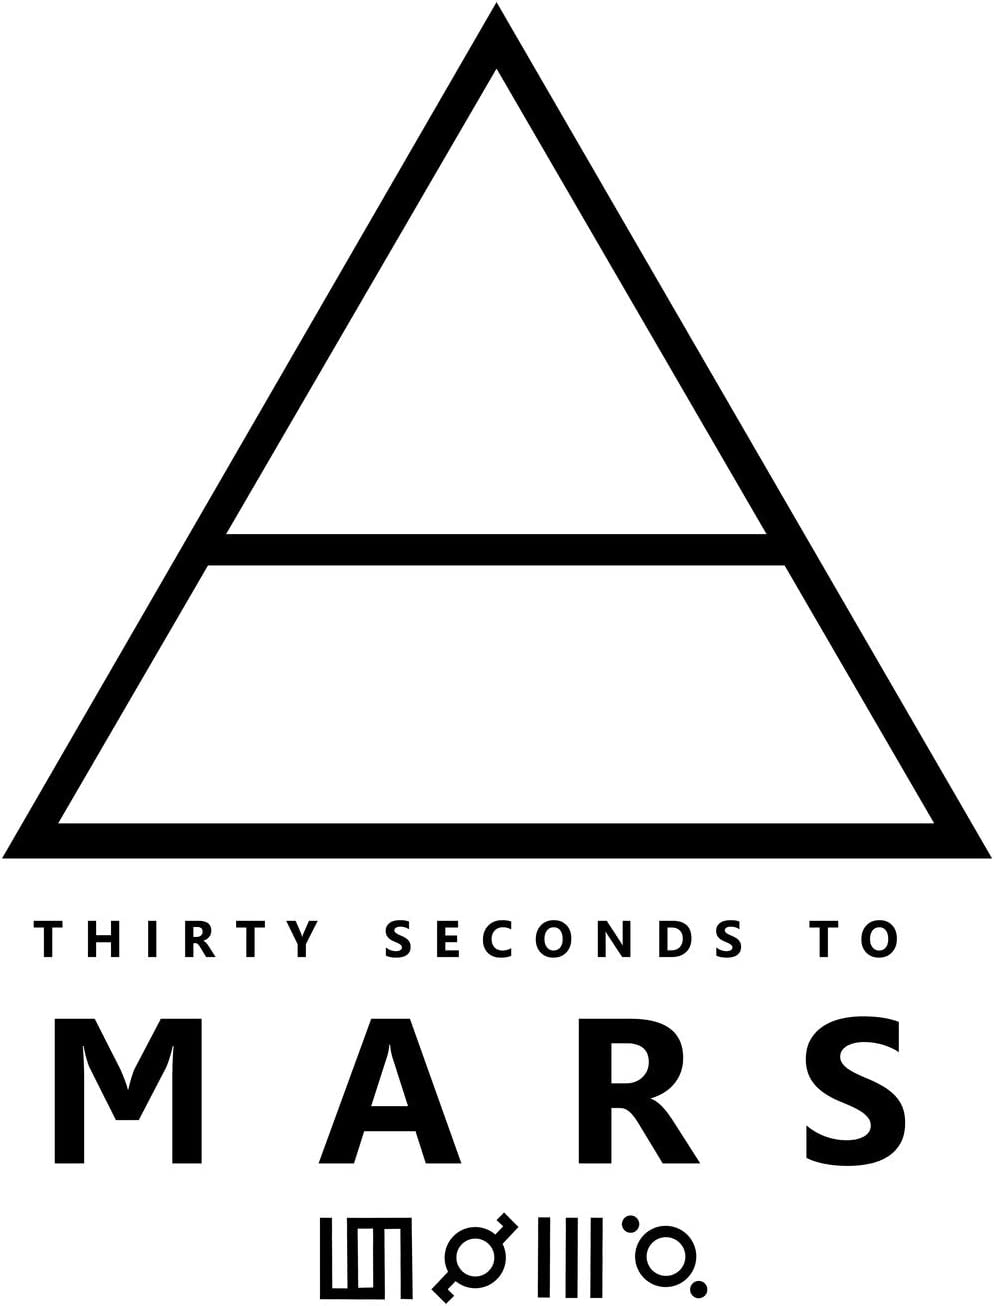 """30 Seconds to Mars Logo Decal Sticker, White, Black, Silver, Red, Green, Yellow, Orange, or Blue, H""""8 By L""""6 Inches"""